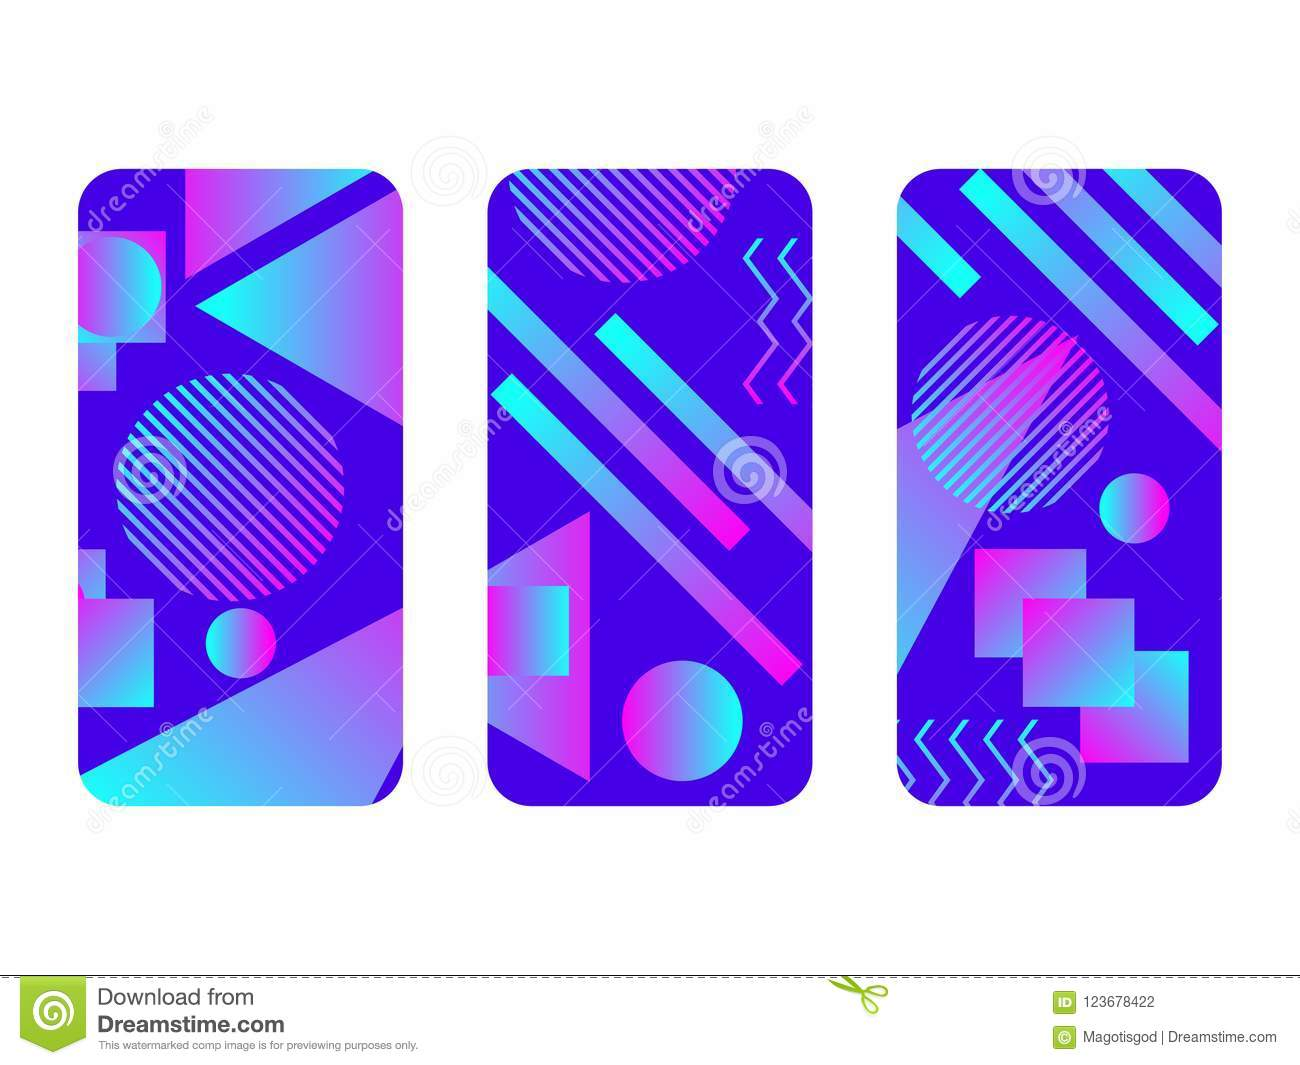 23c5702c2ca3f9 Phone case mockup. Memphis pattern background. Gradients geometric shape  style of the 80s. Smartphone cases set. Vector illustration